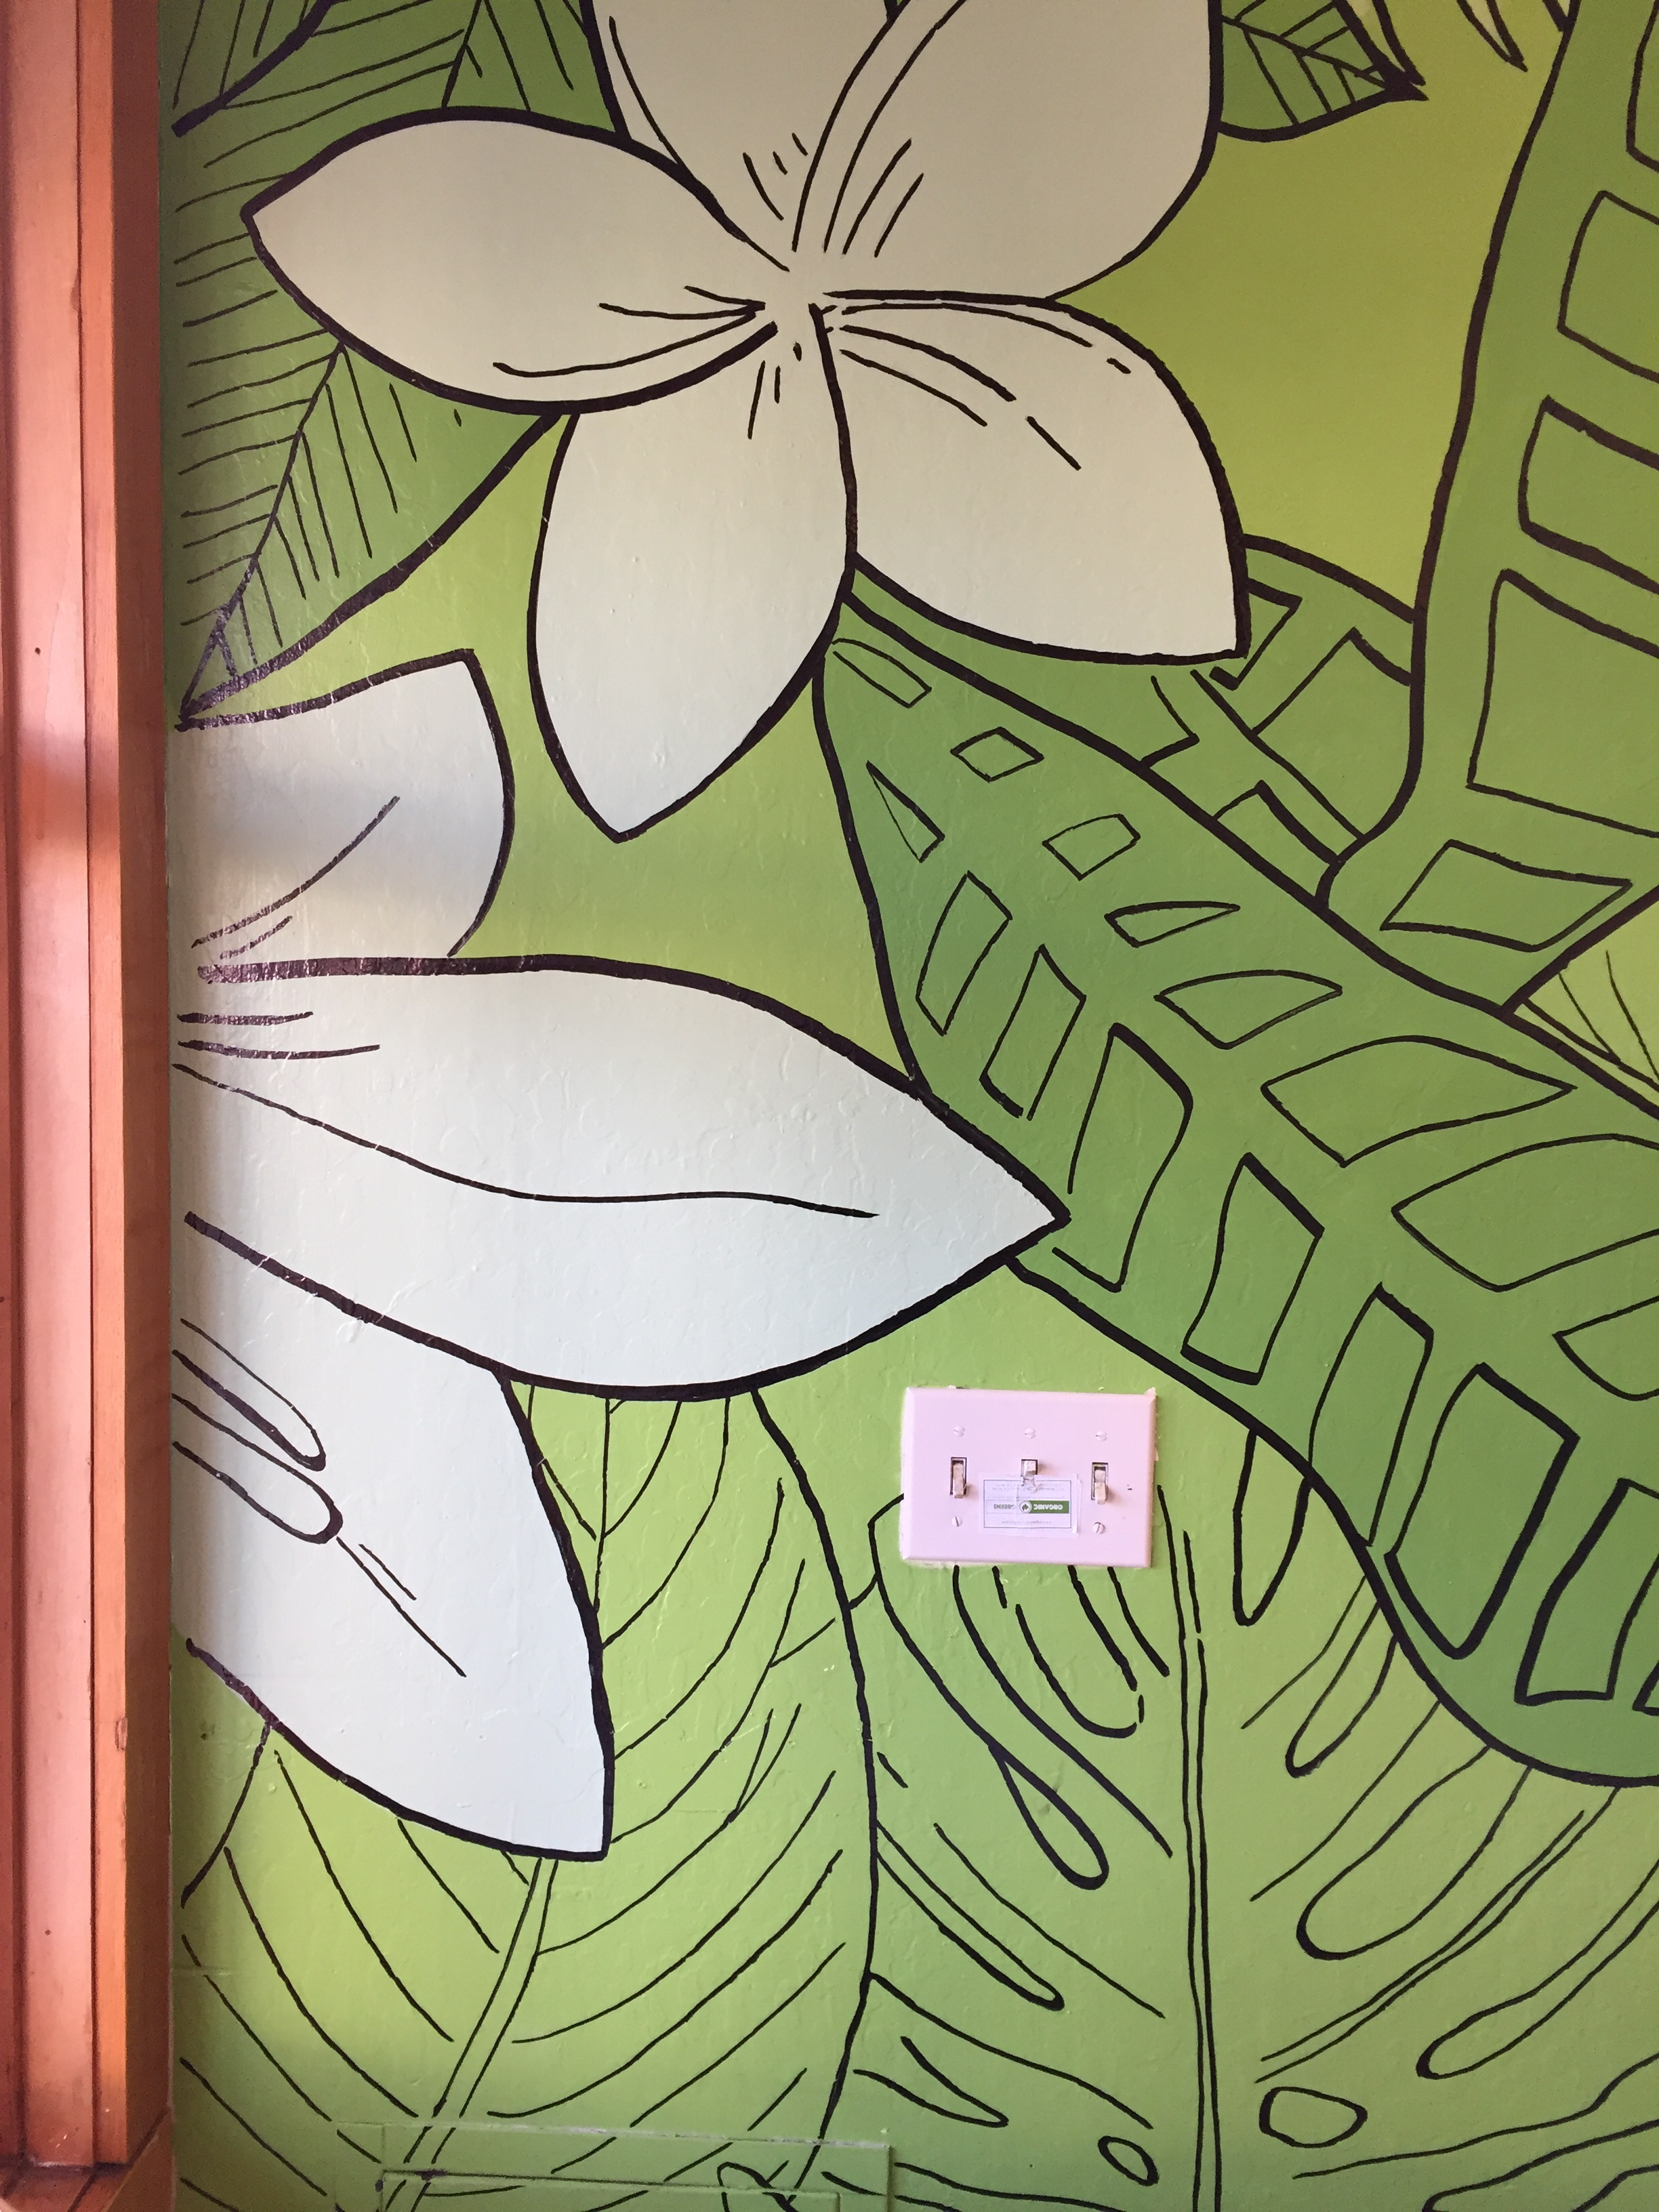 Office-commercial-mural-san-francisco-organic-greens-wall-and-wall-mural-company_003.jpeg